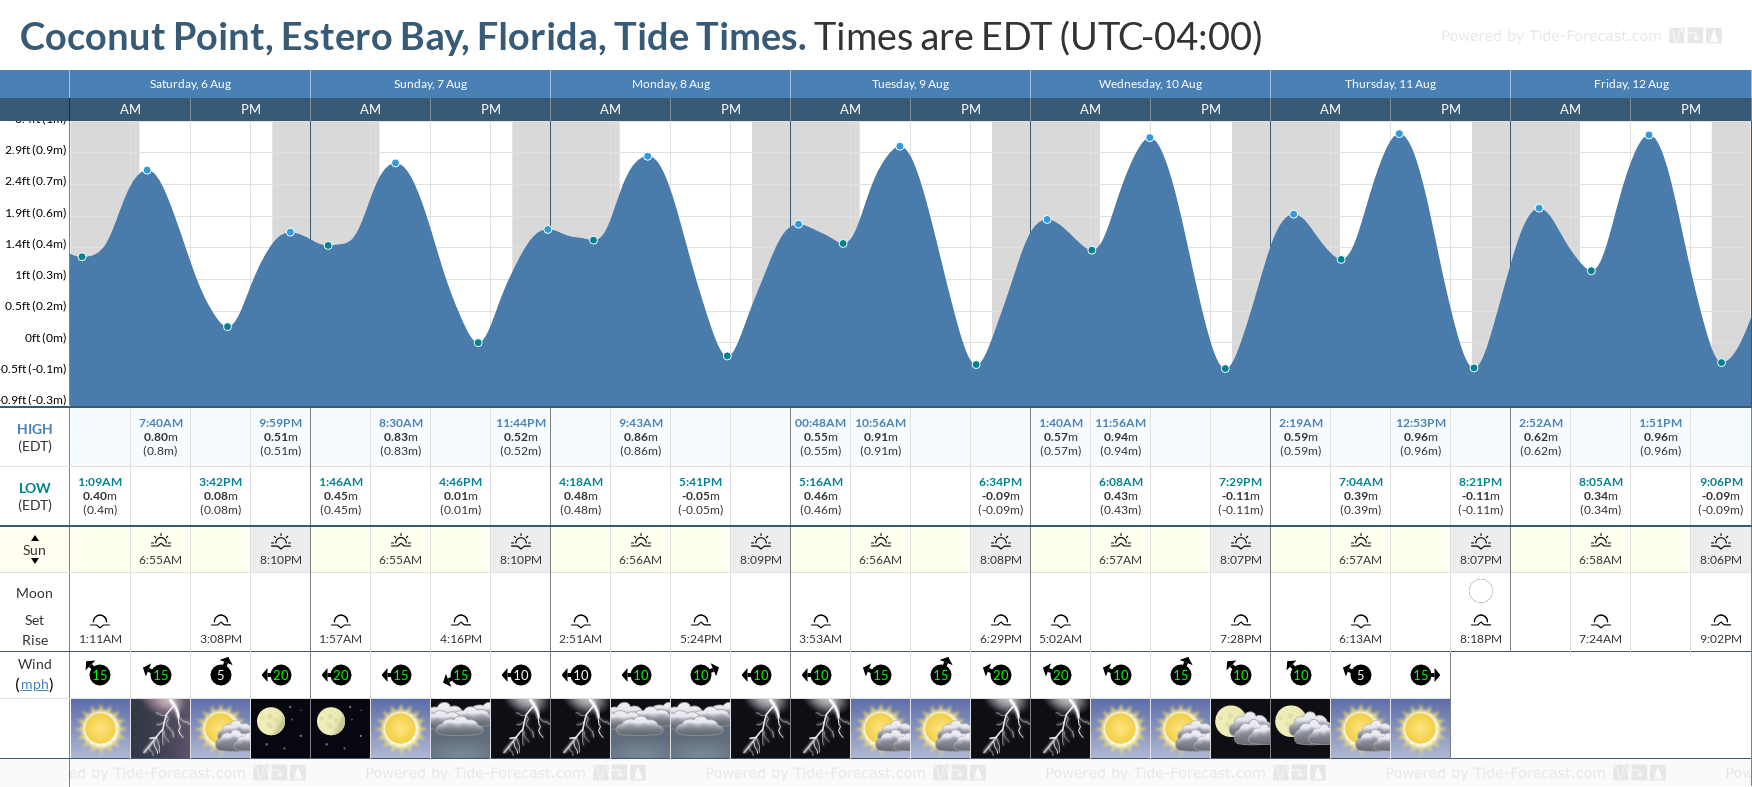 Coconut Point, Estero Bay, Florida Tide Chart including high and low tide tide times for the next 7 days